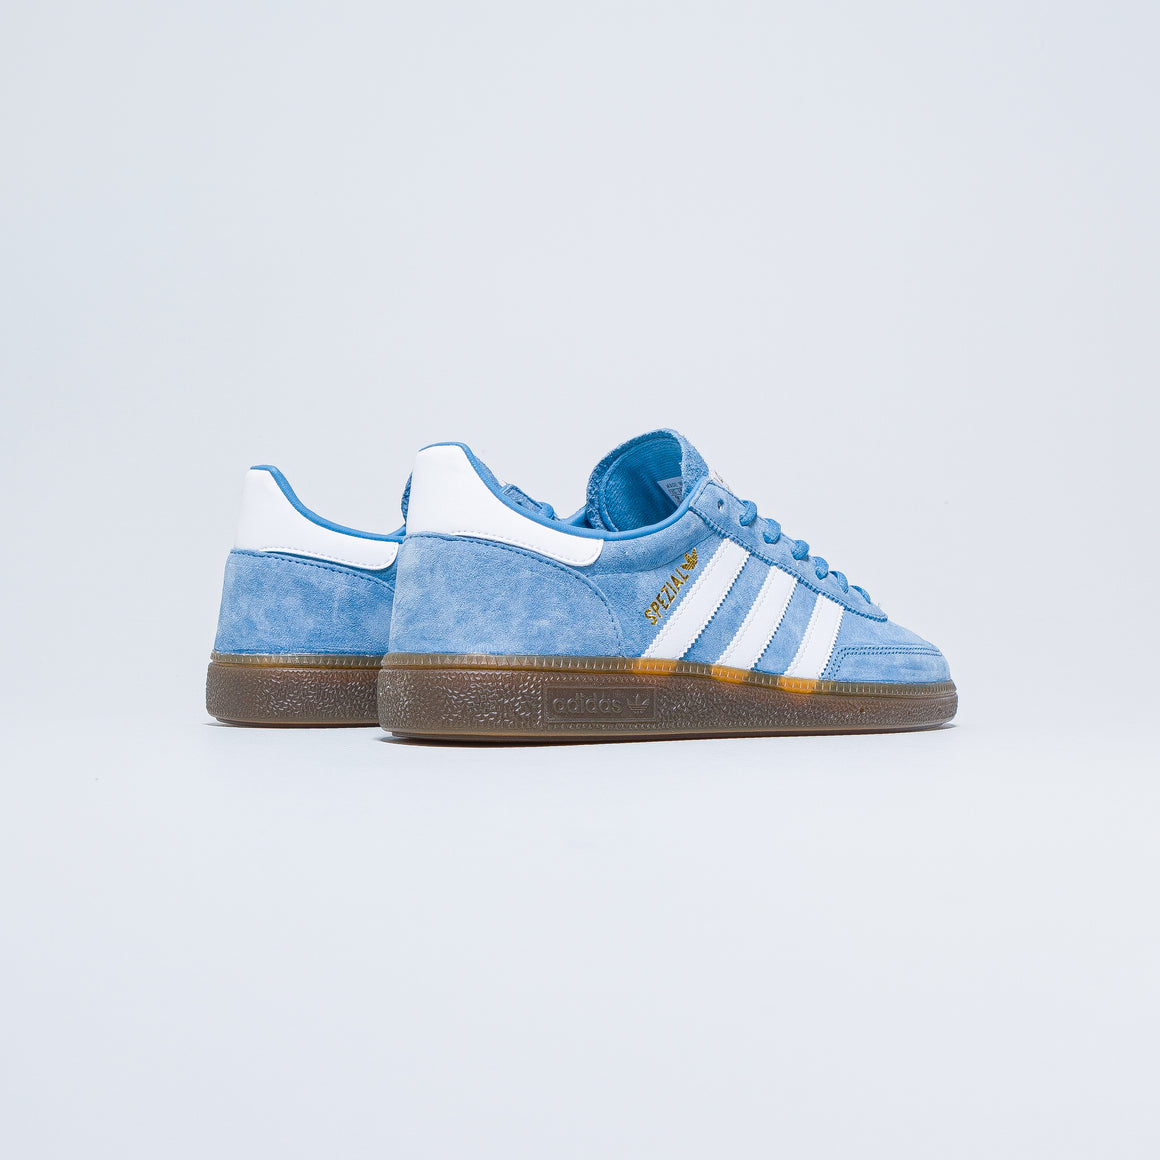 adidas - Handball Spezial - Light Blue/Cloud White - Up There